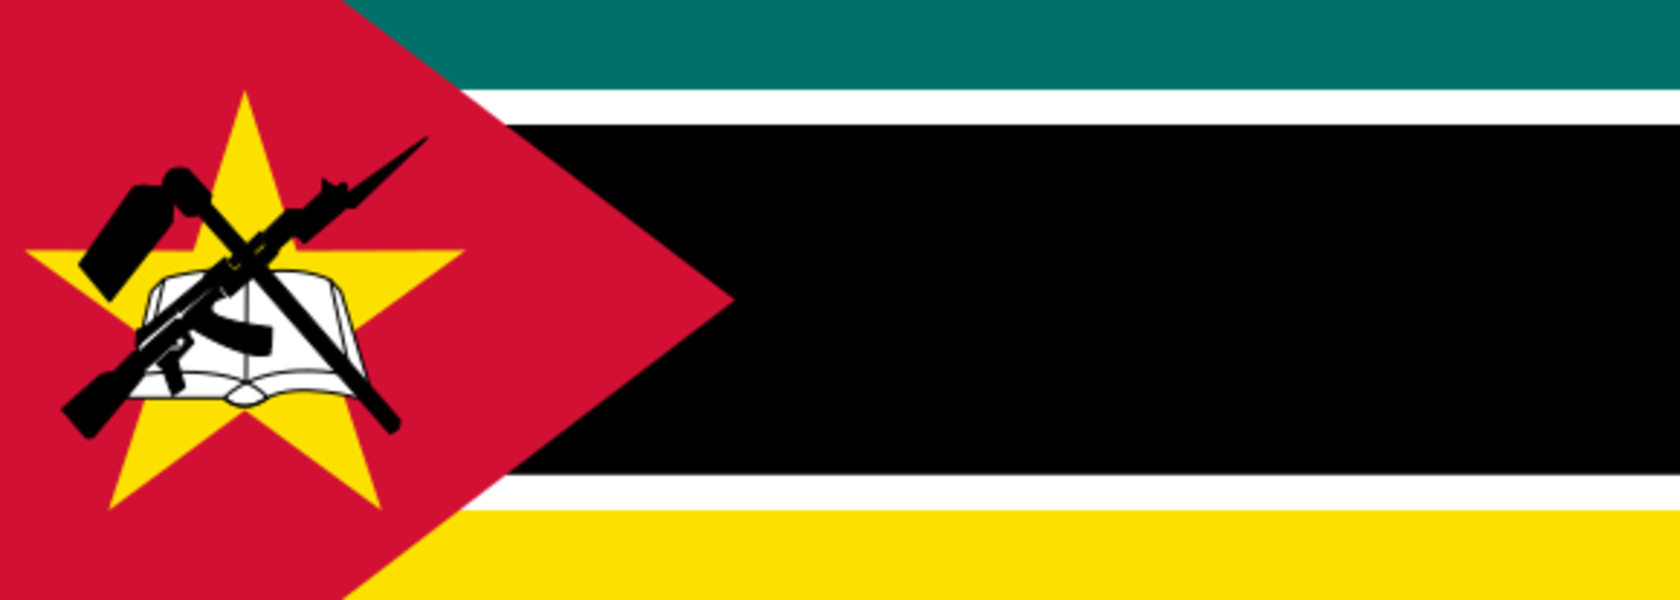 RBR on track for Mozambique LNG labour boom